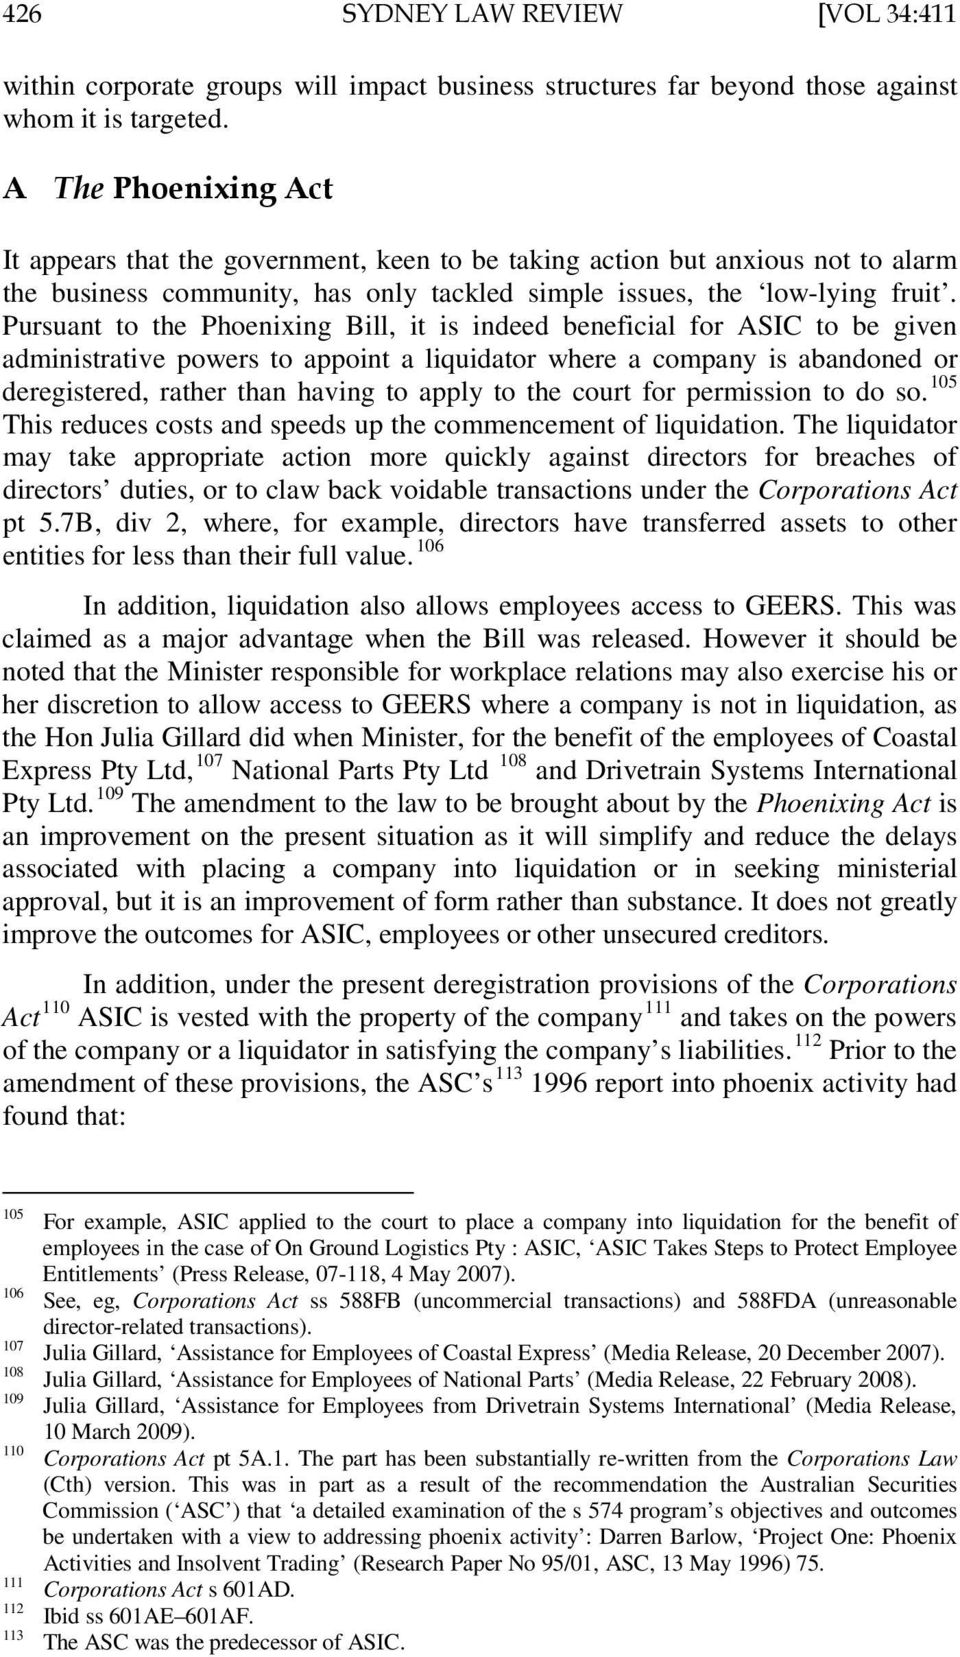 Pursuant to the Phoenixing Bill, it is indeed beneficial for ASIC to be given administrative powers to appoint a liquidator where a company is abandoned or deregistered, rather than having to apply